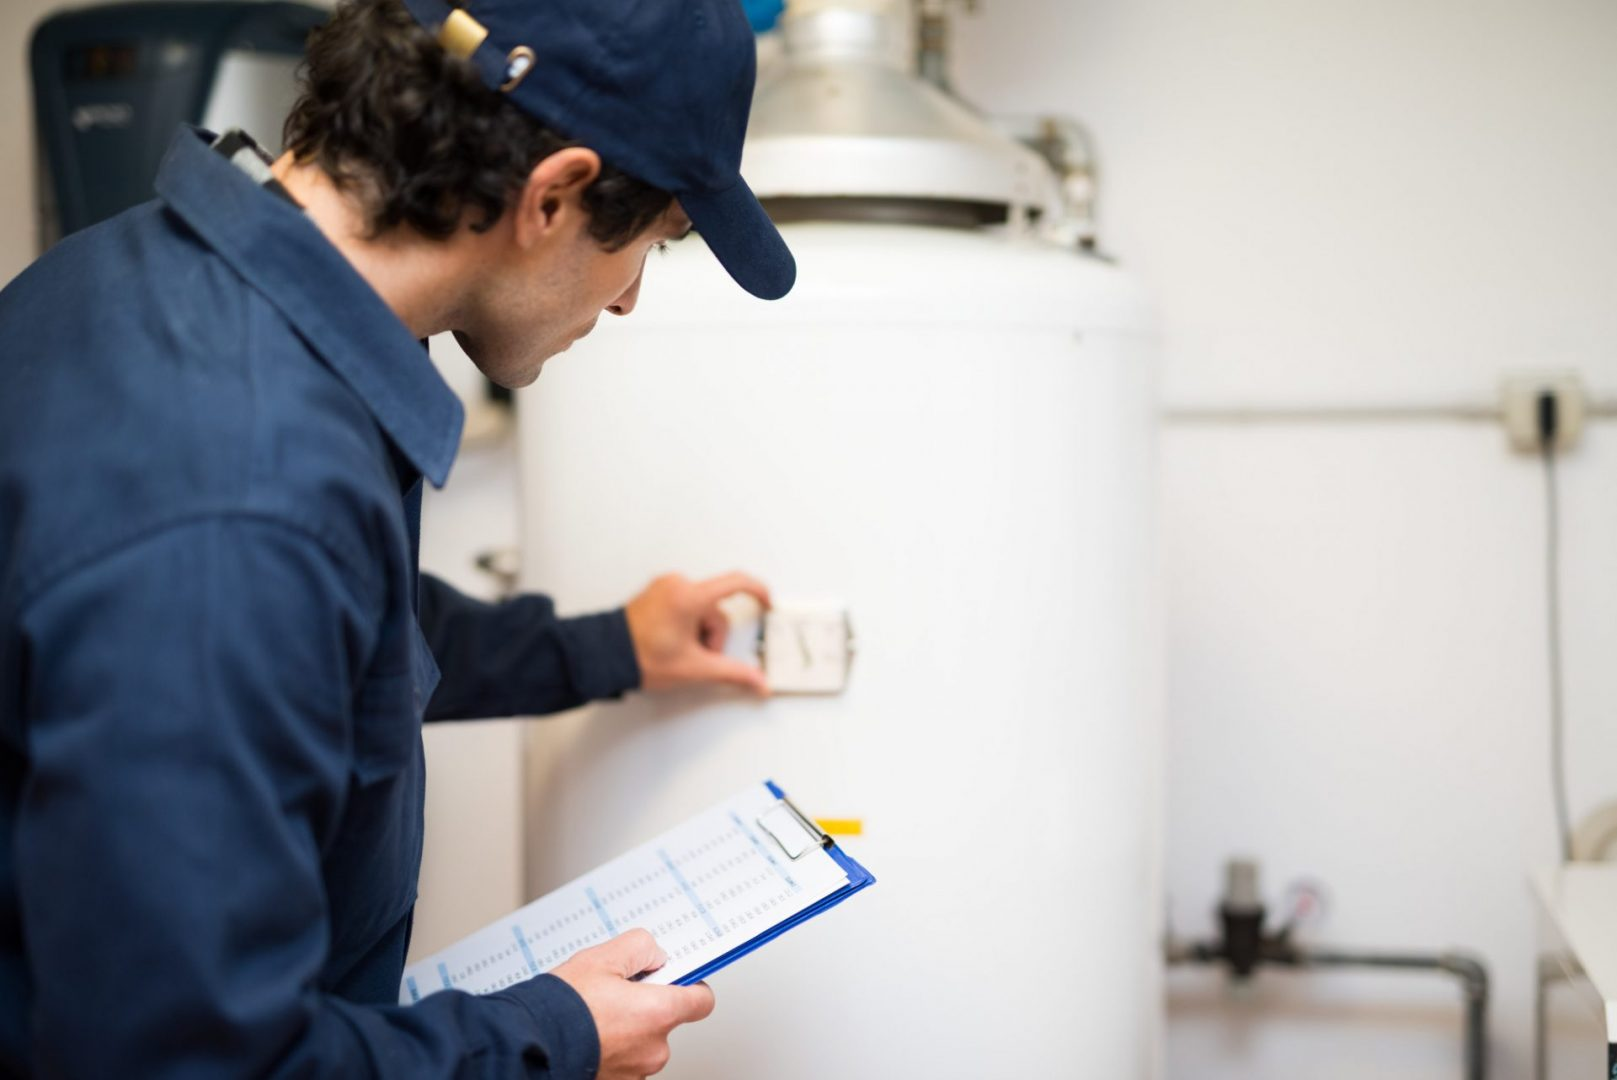 plumbing service needs to abide by social distancing for the foreseeable future